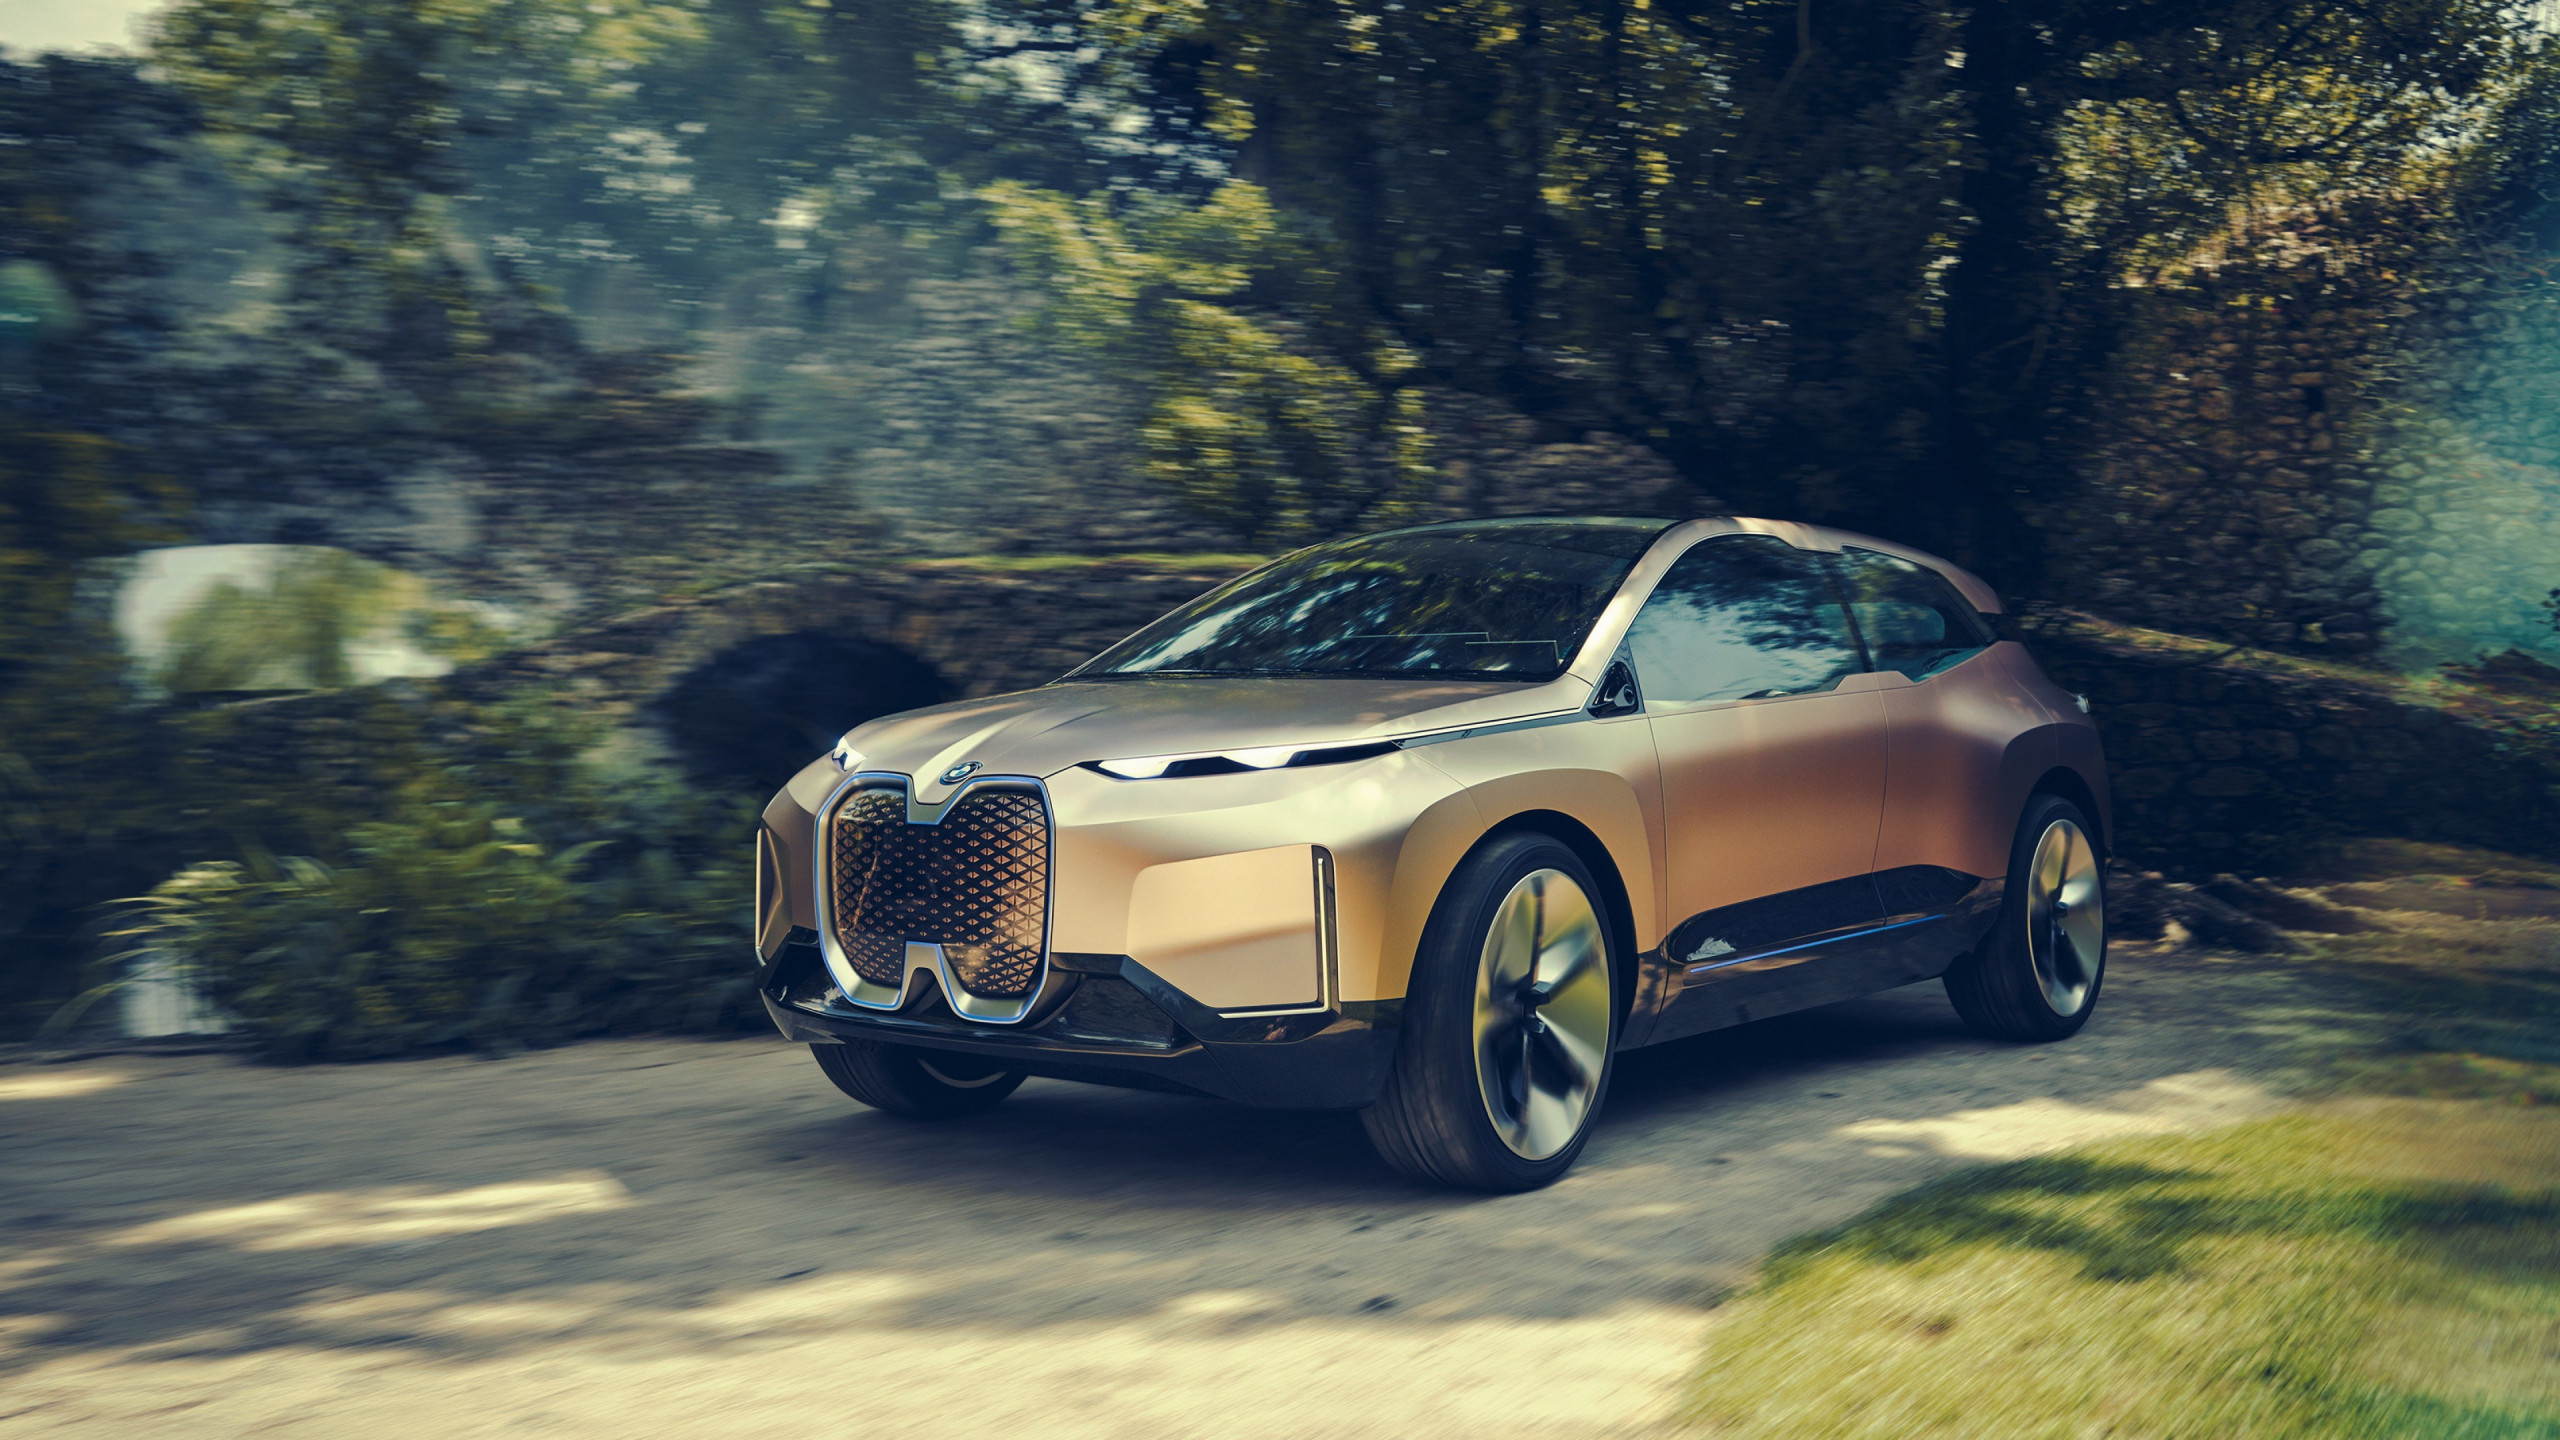 BMW Vision iNEXT wallpaper 2560x1440